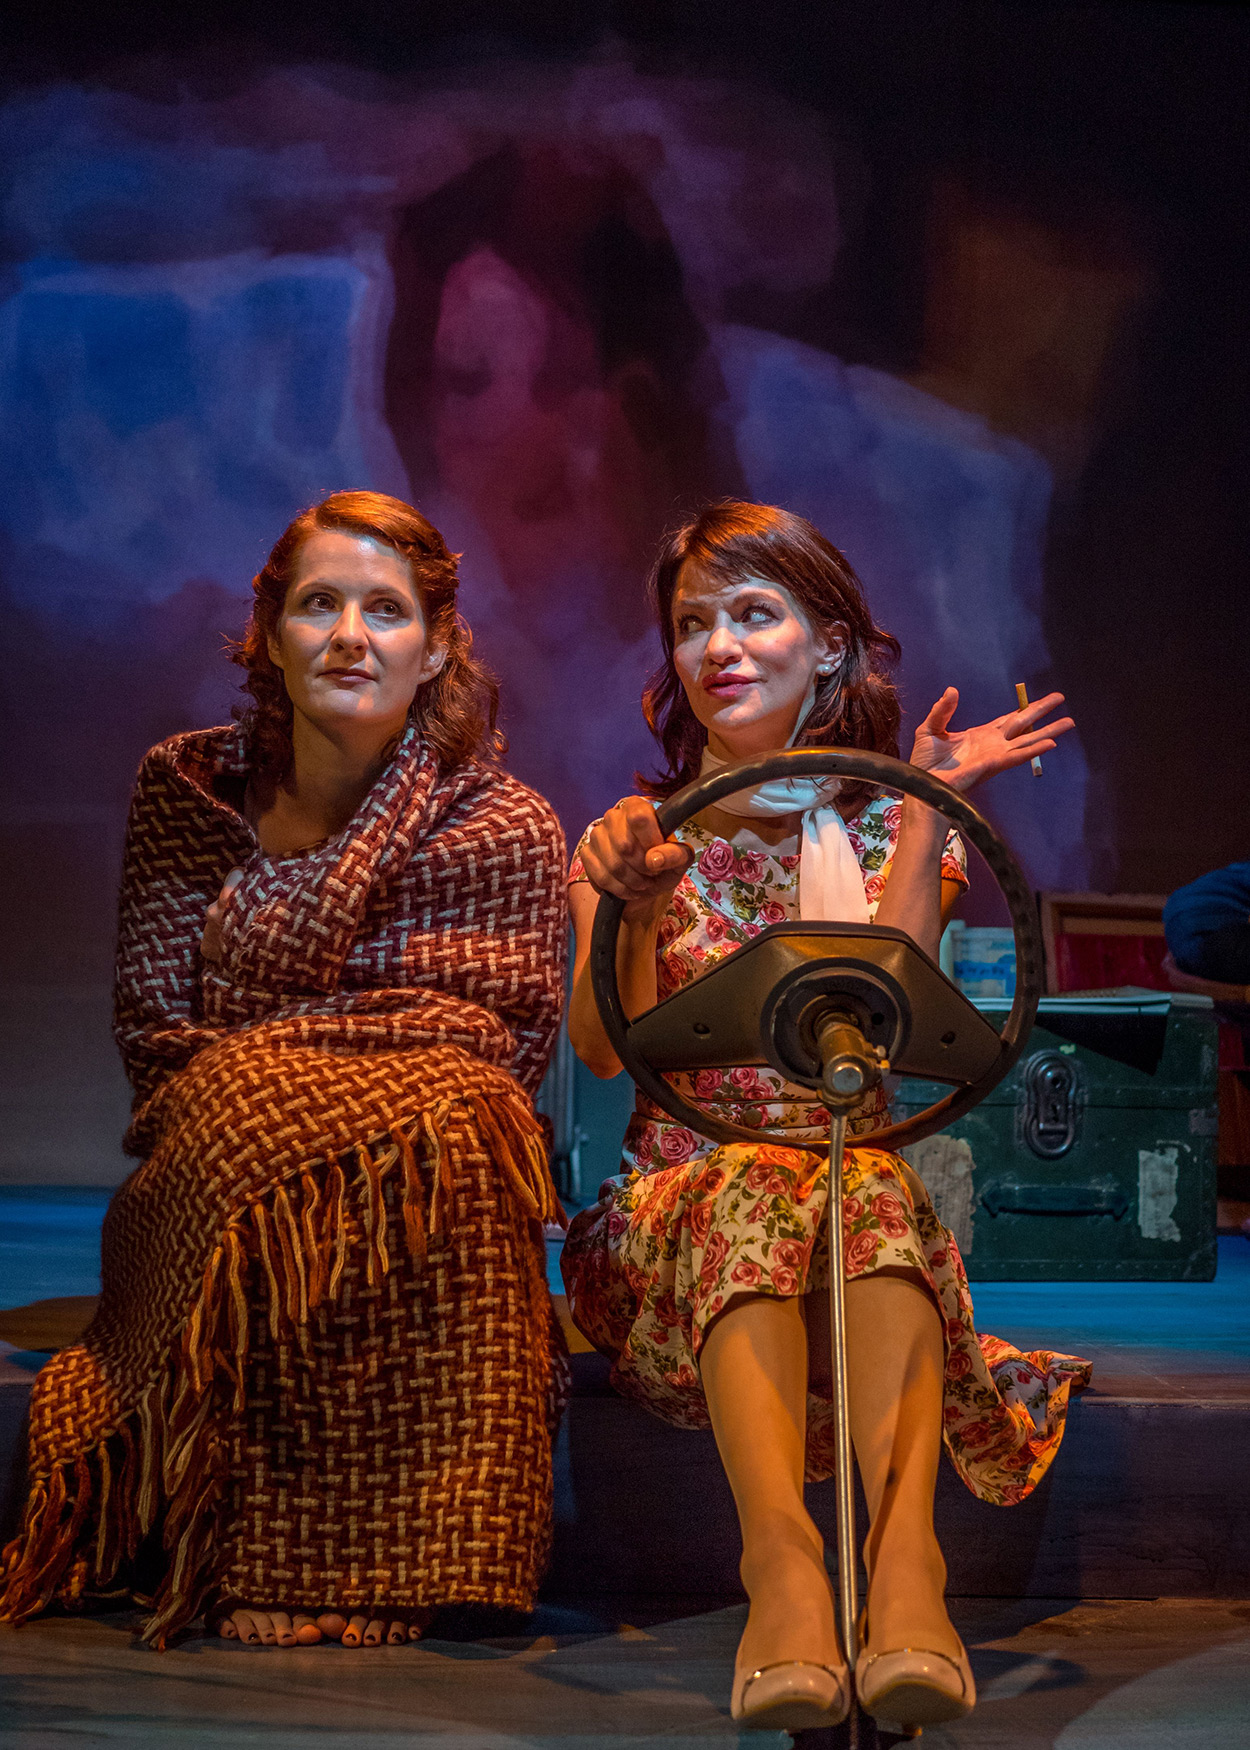 Production Photo from Janice Underwater (2014). Two women sit side-by-side. The woman to the left is wrapped in a blanket. The woman to the right is holding a car sterring wheels, depicting the women are in a car.